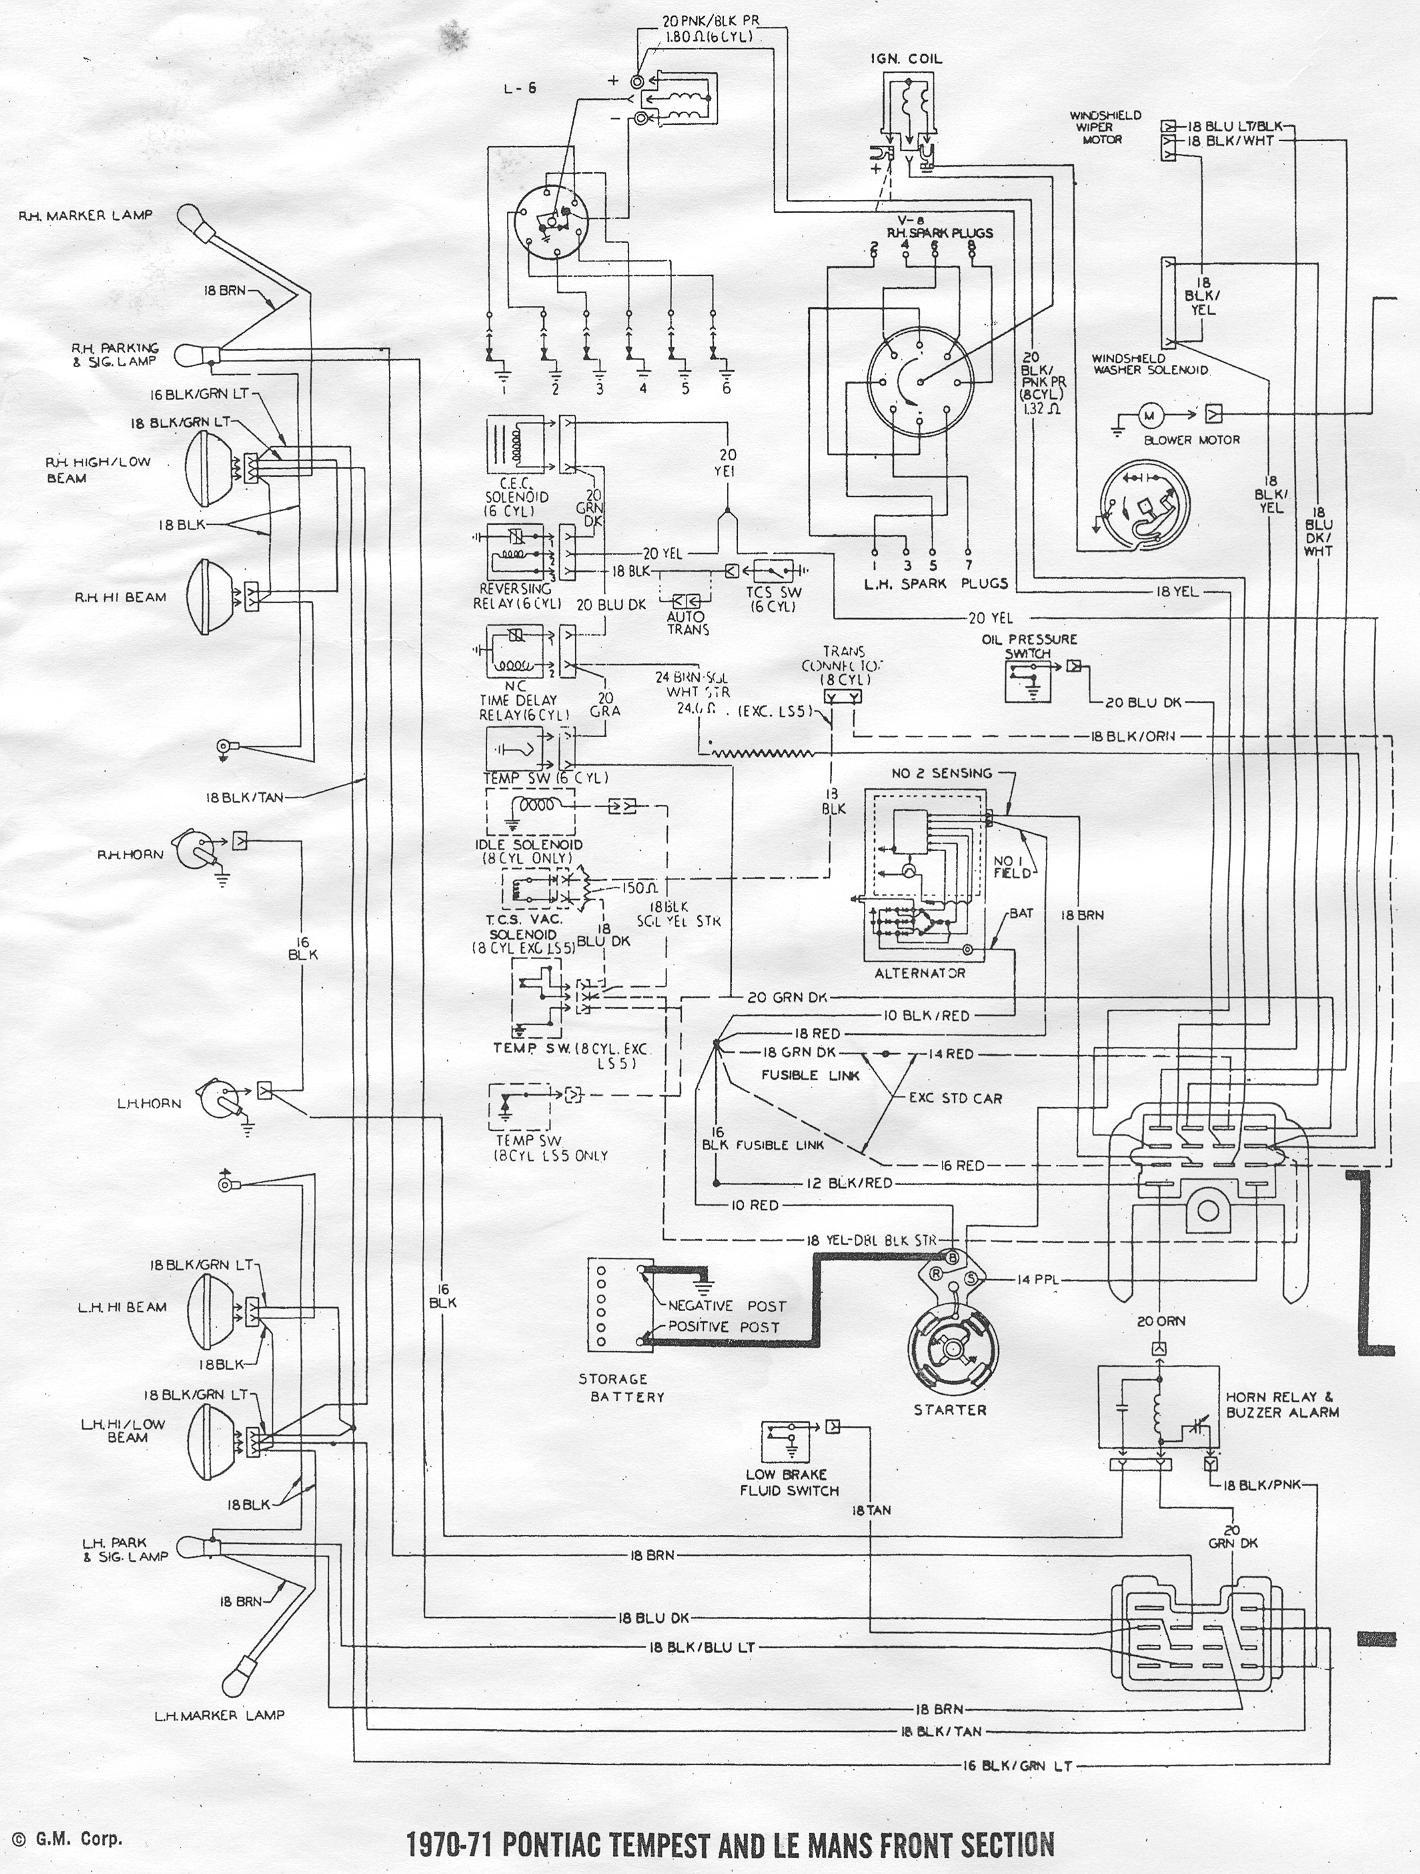 gto wiring diagram scans - pontiac gto forum, Wiring diagram